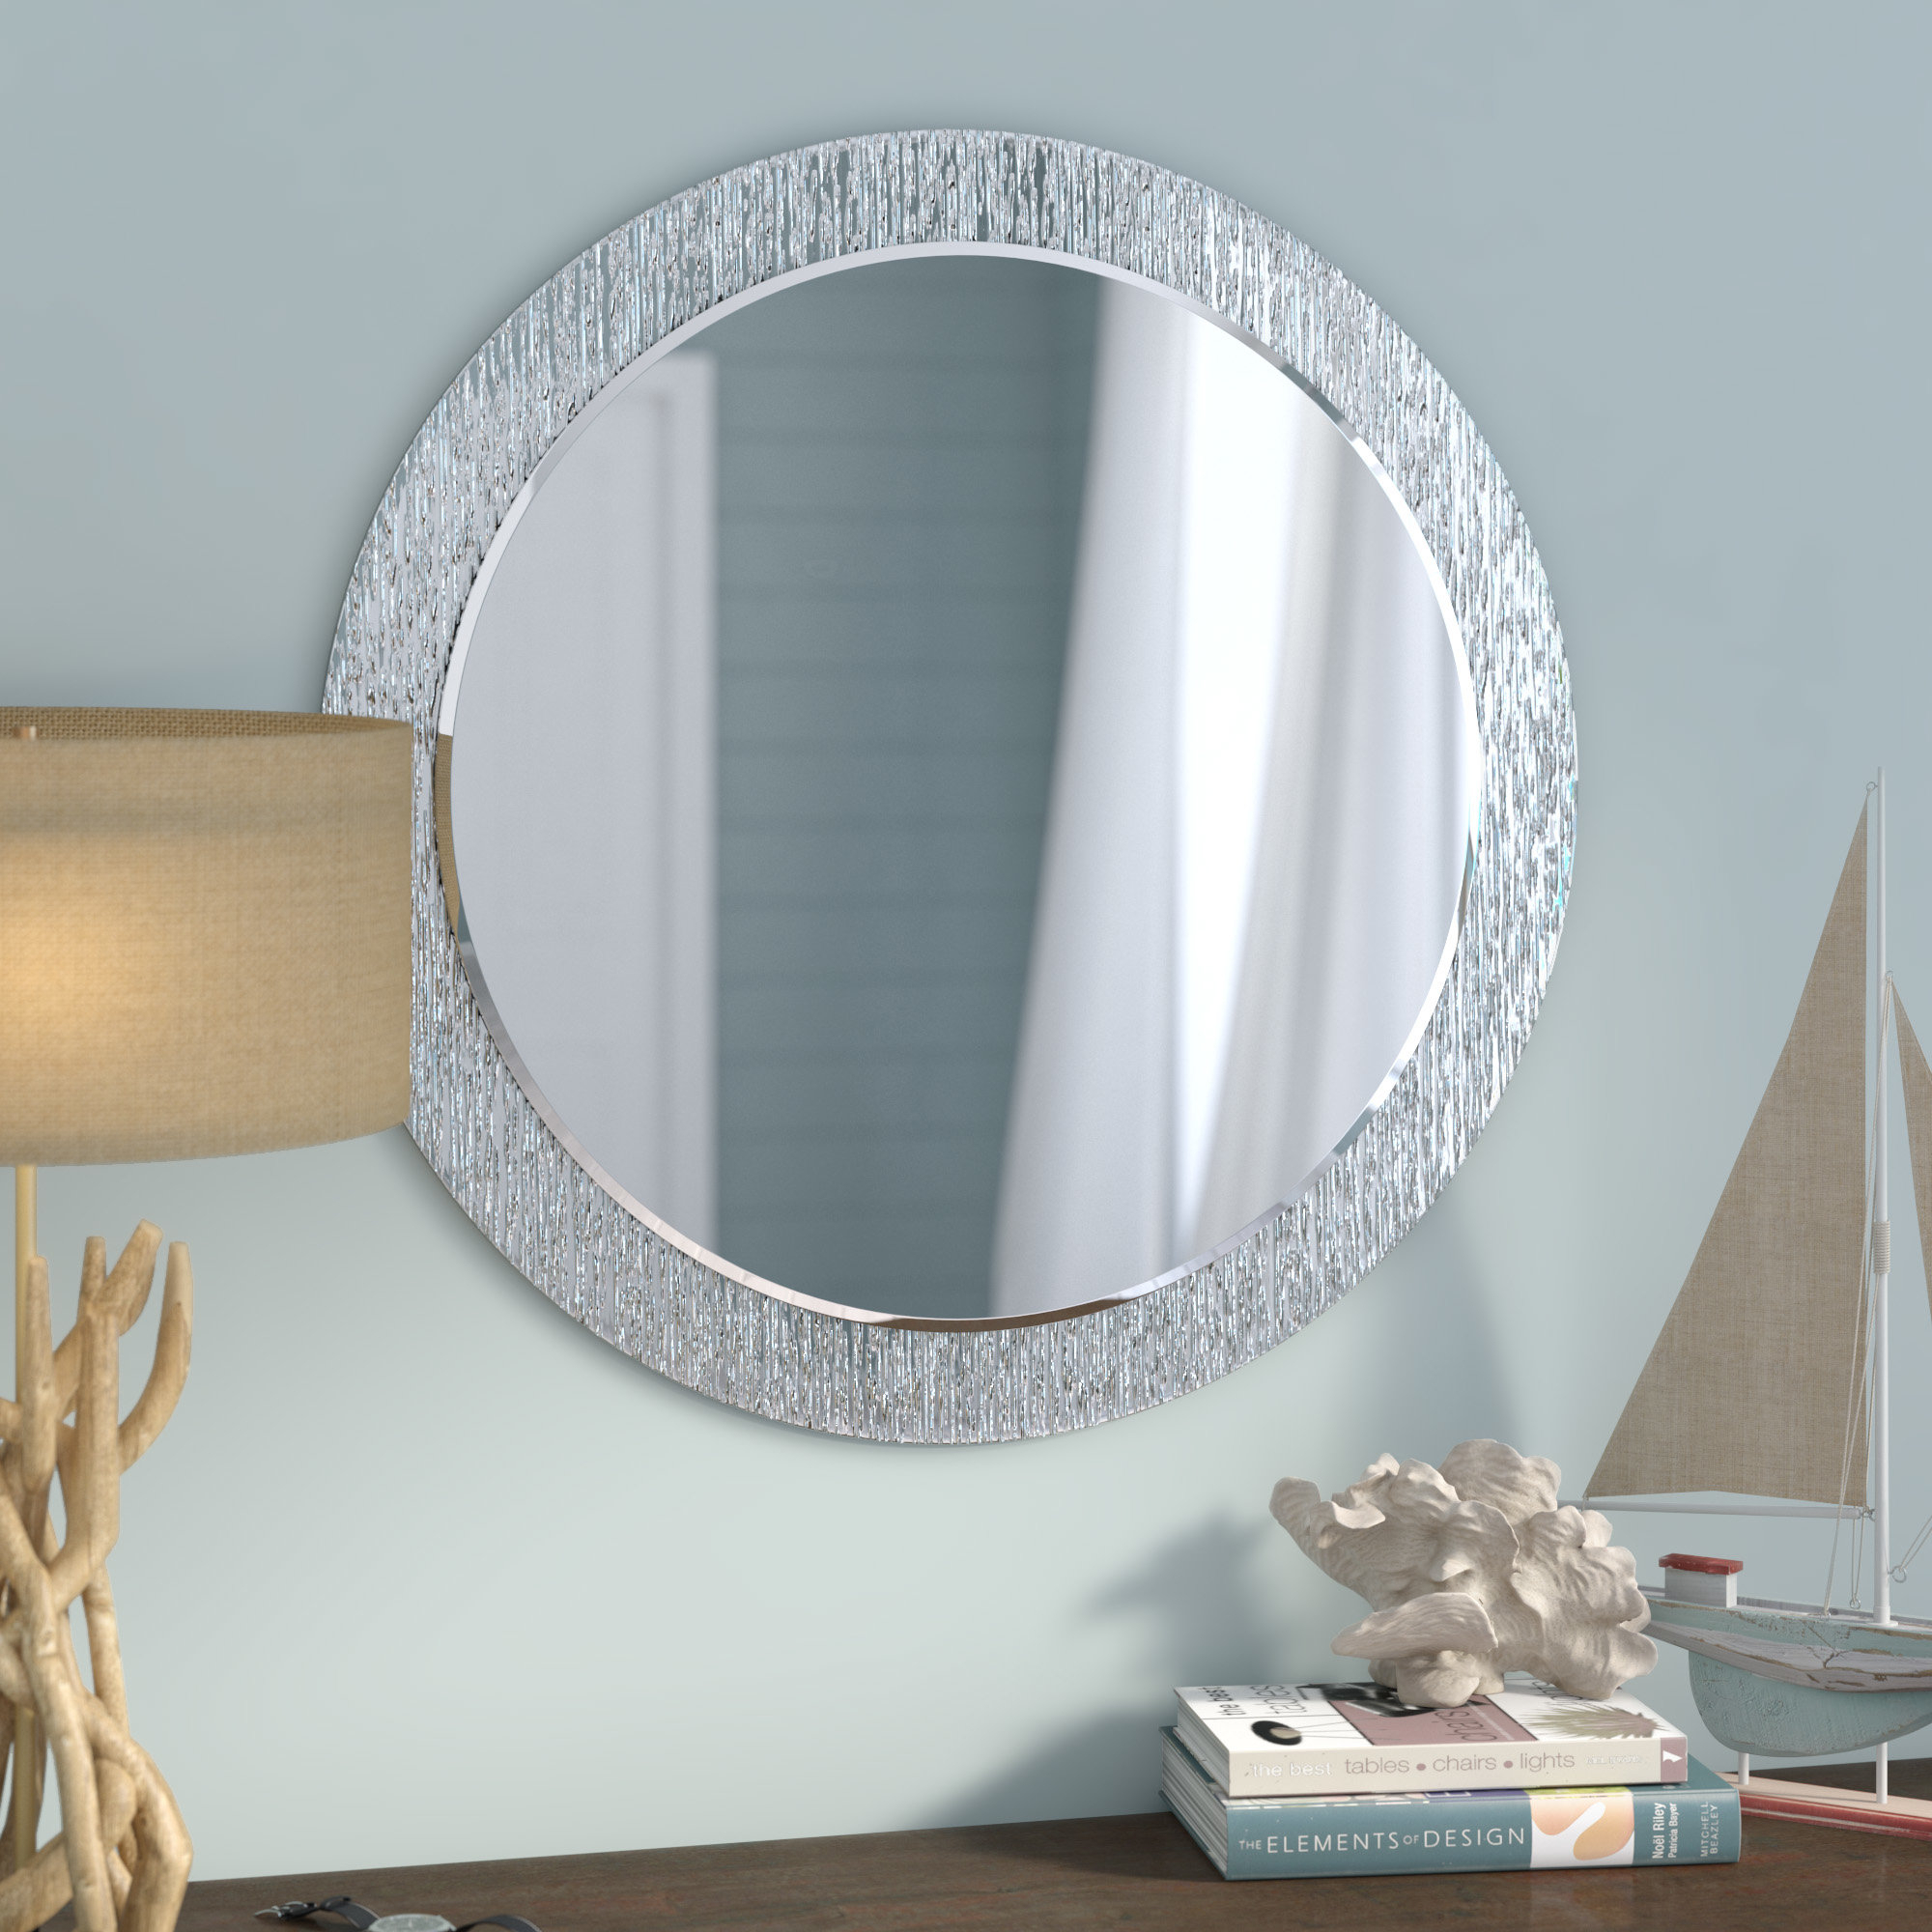 27 Inch Round Mirror | Wayfair in Lidya Frameless Beveled Wall Mirrors (Image 3 of 30)